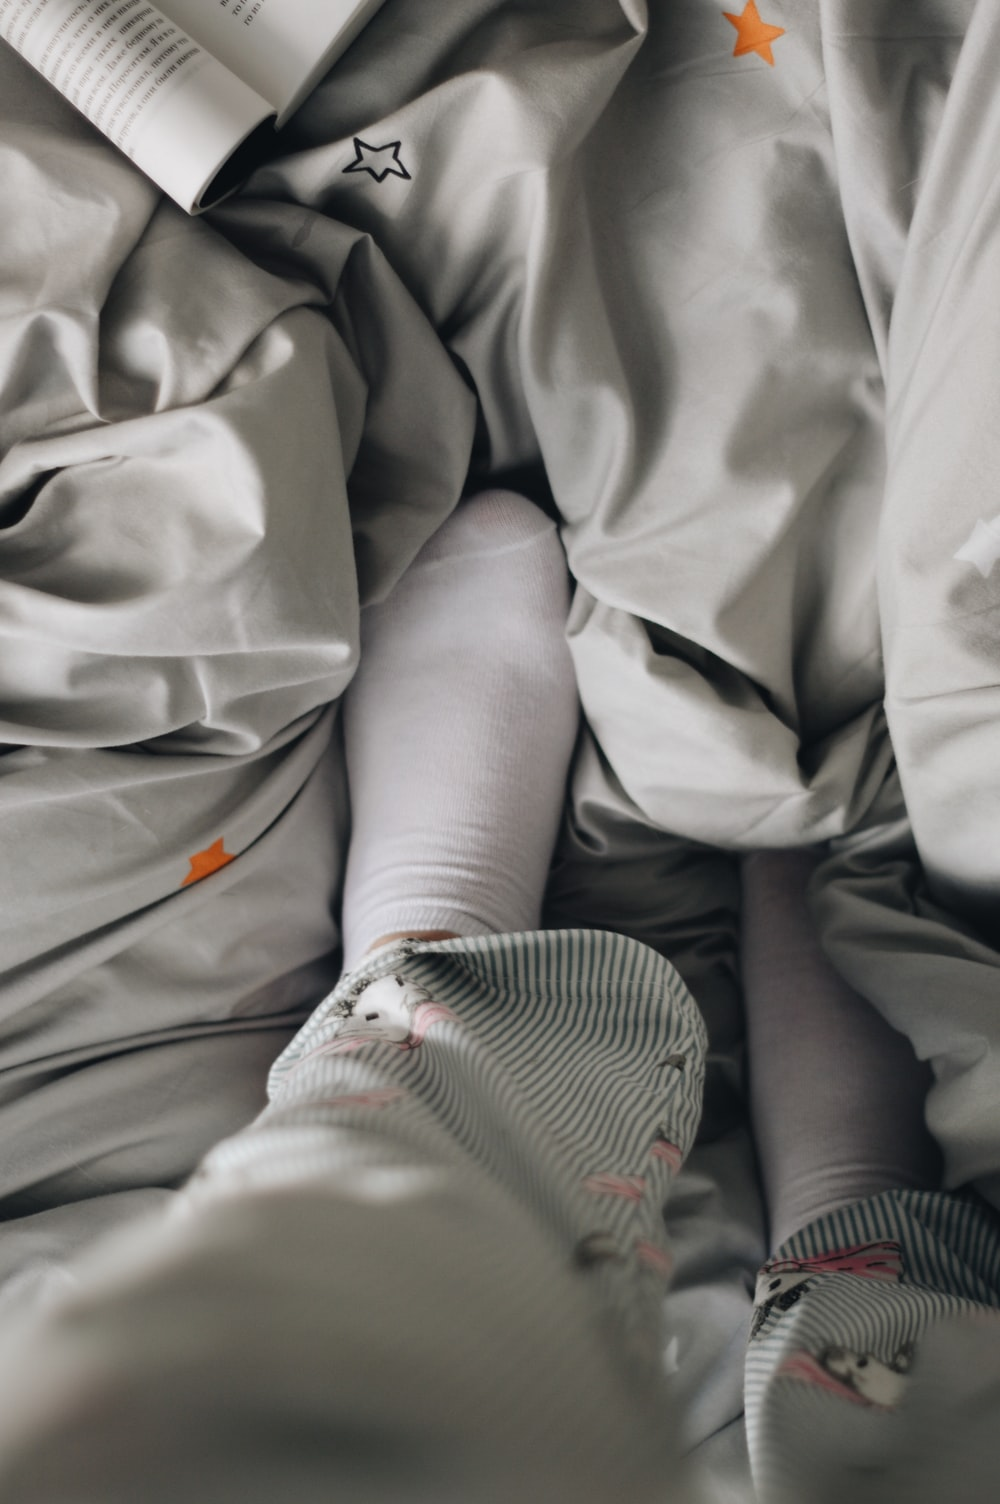 person in gray pants and white socks